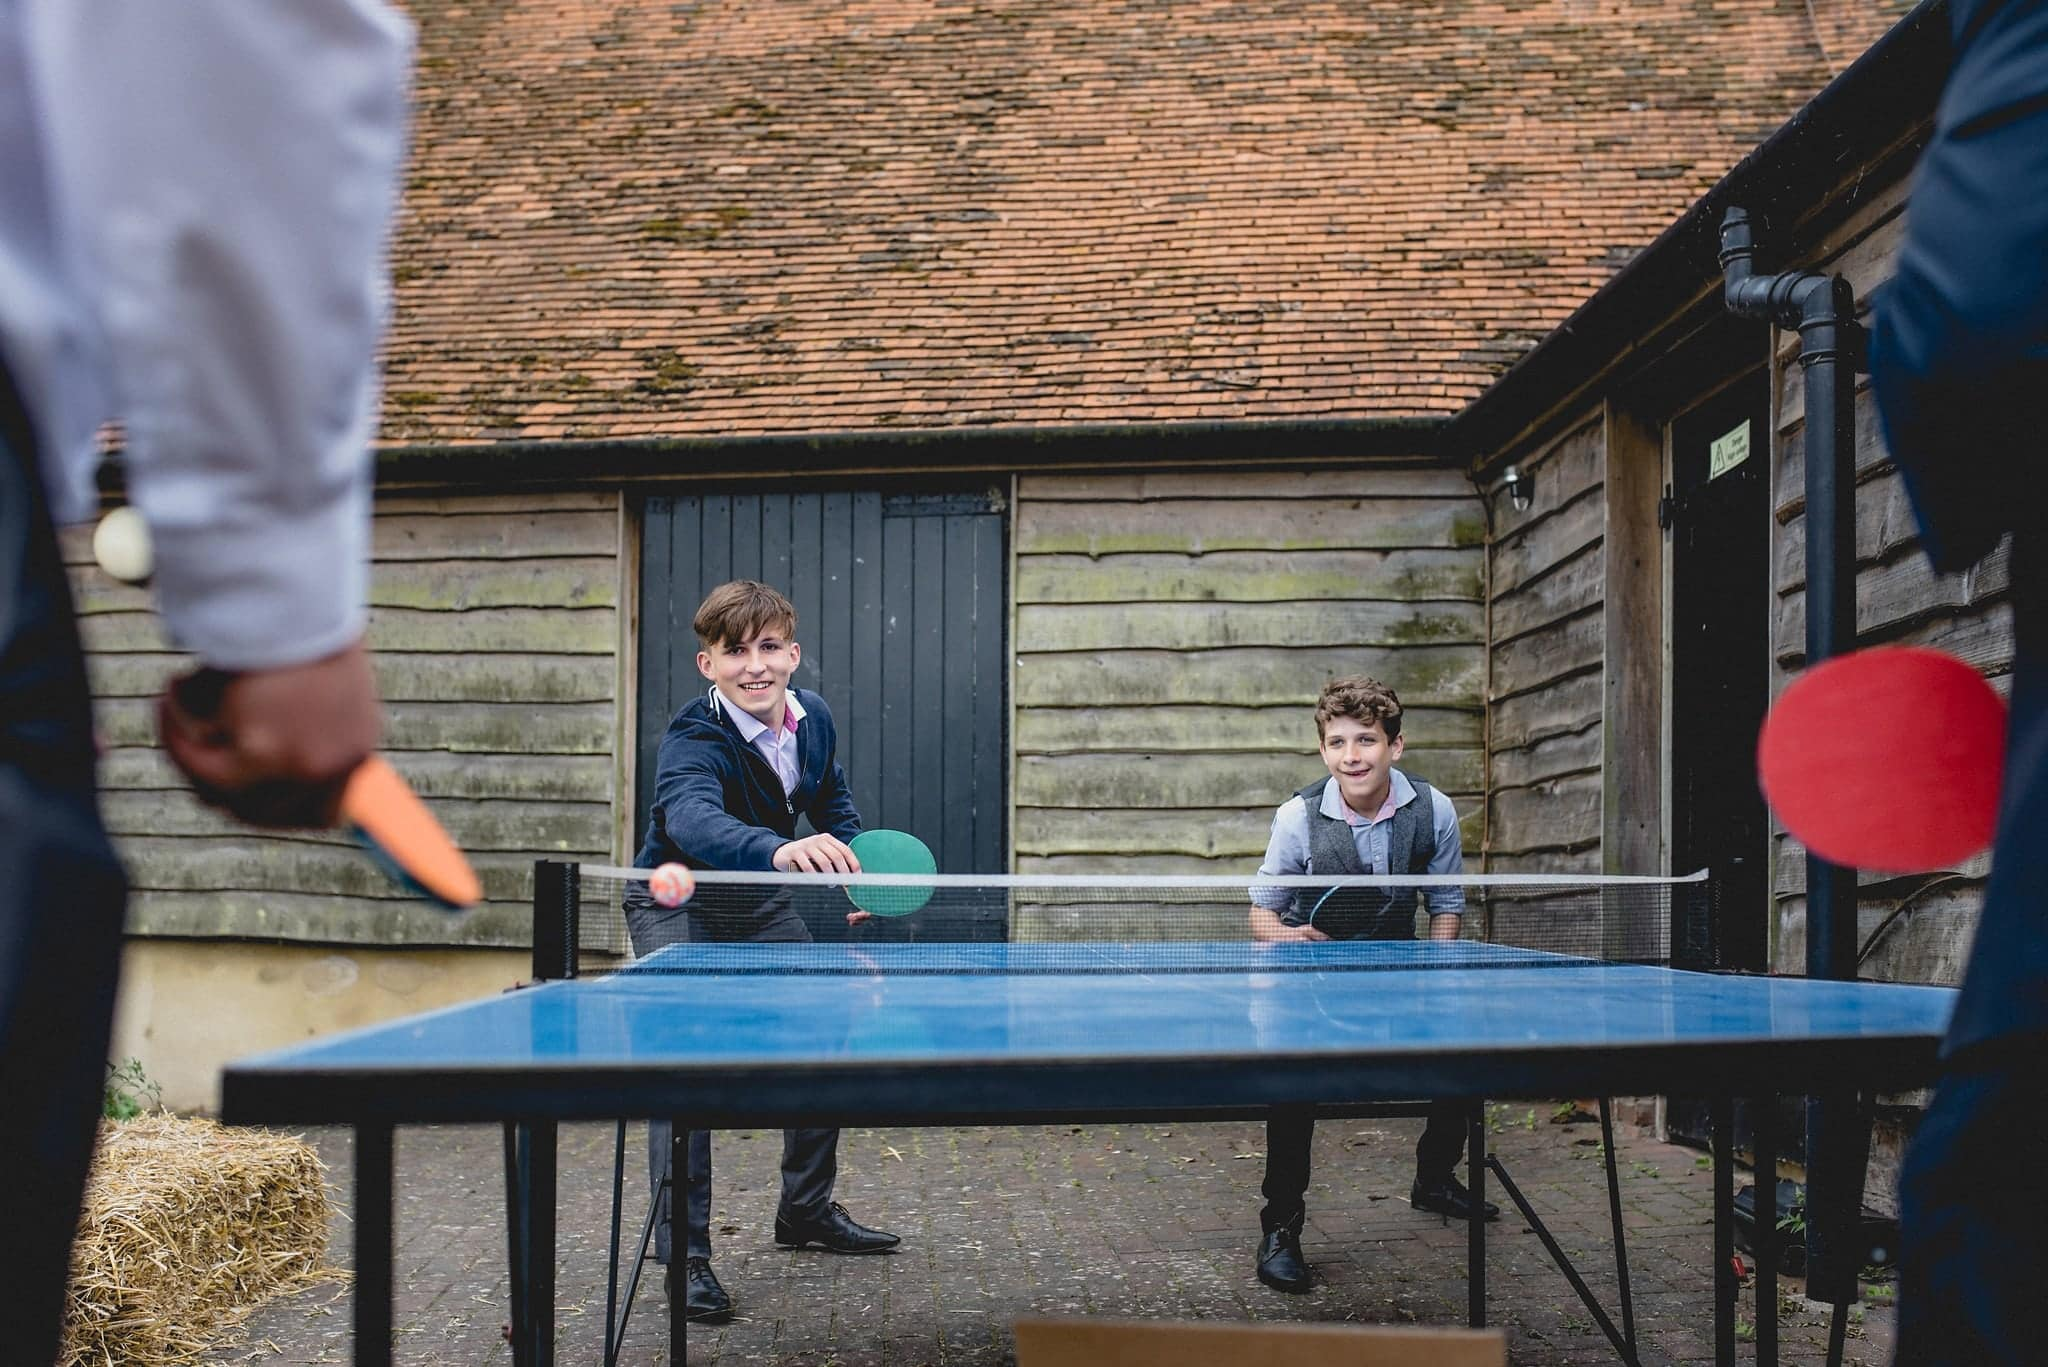 Kids play ping pong at relaxed Fison Barn wedding